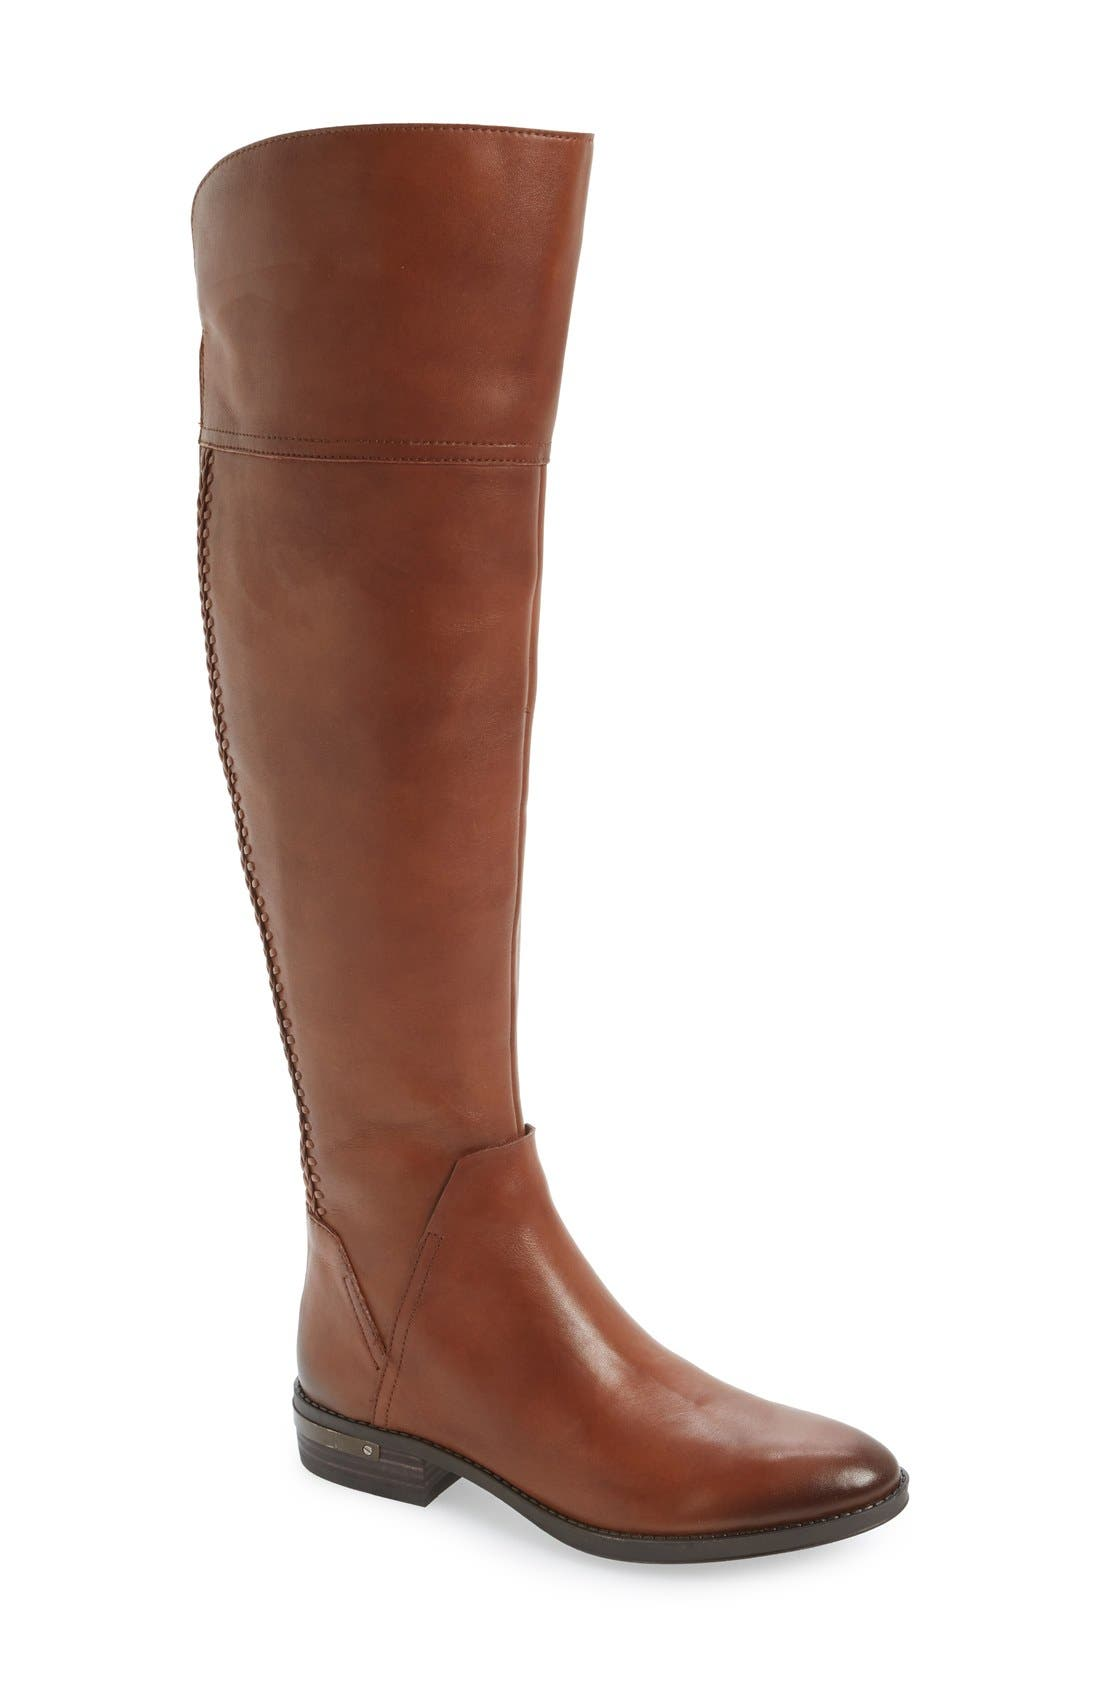 Main Image - Vince Camuto 'Pedra' Wide Calf Over the Knee Boot (Women)